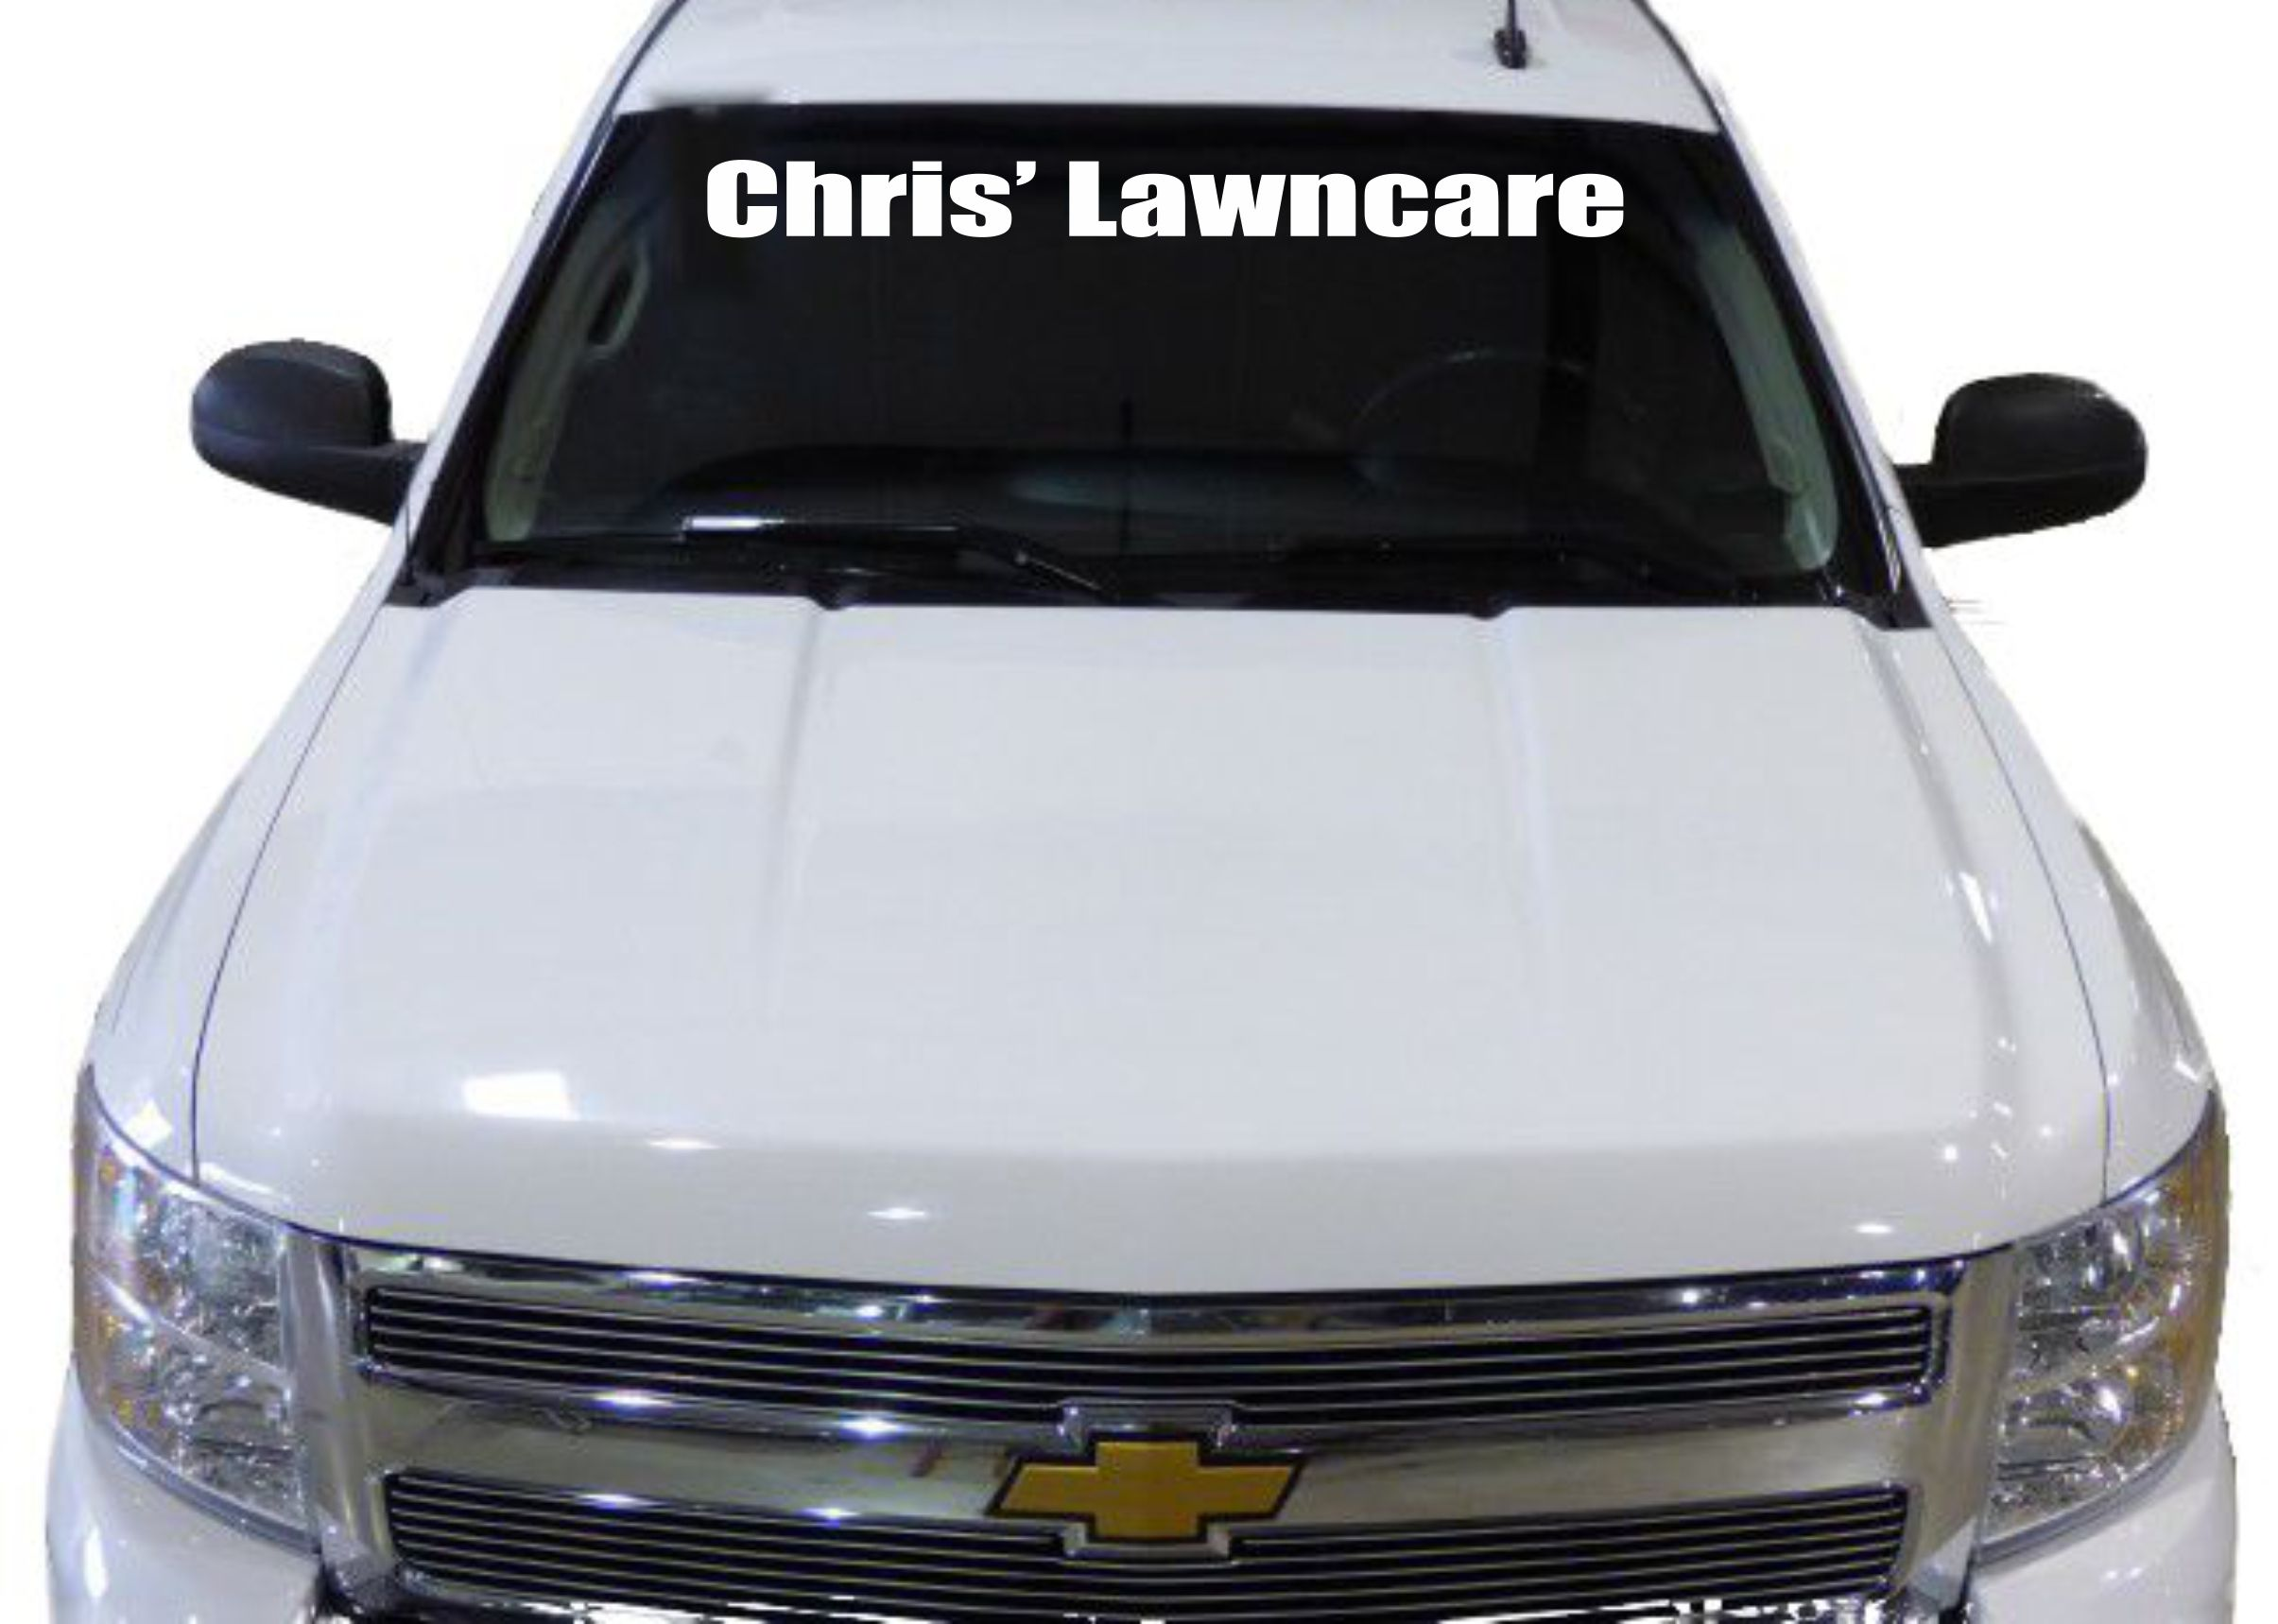 Thanks Chris Lawncare For Your Vinyl Decal Windshield Order - Decals for your car